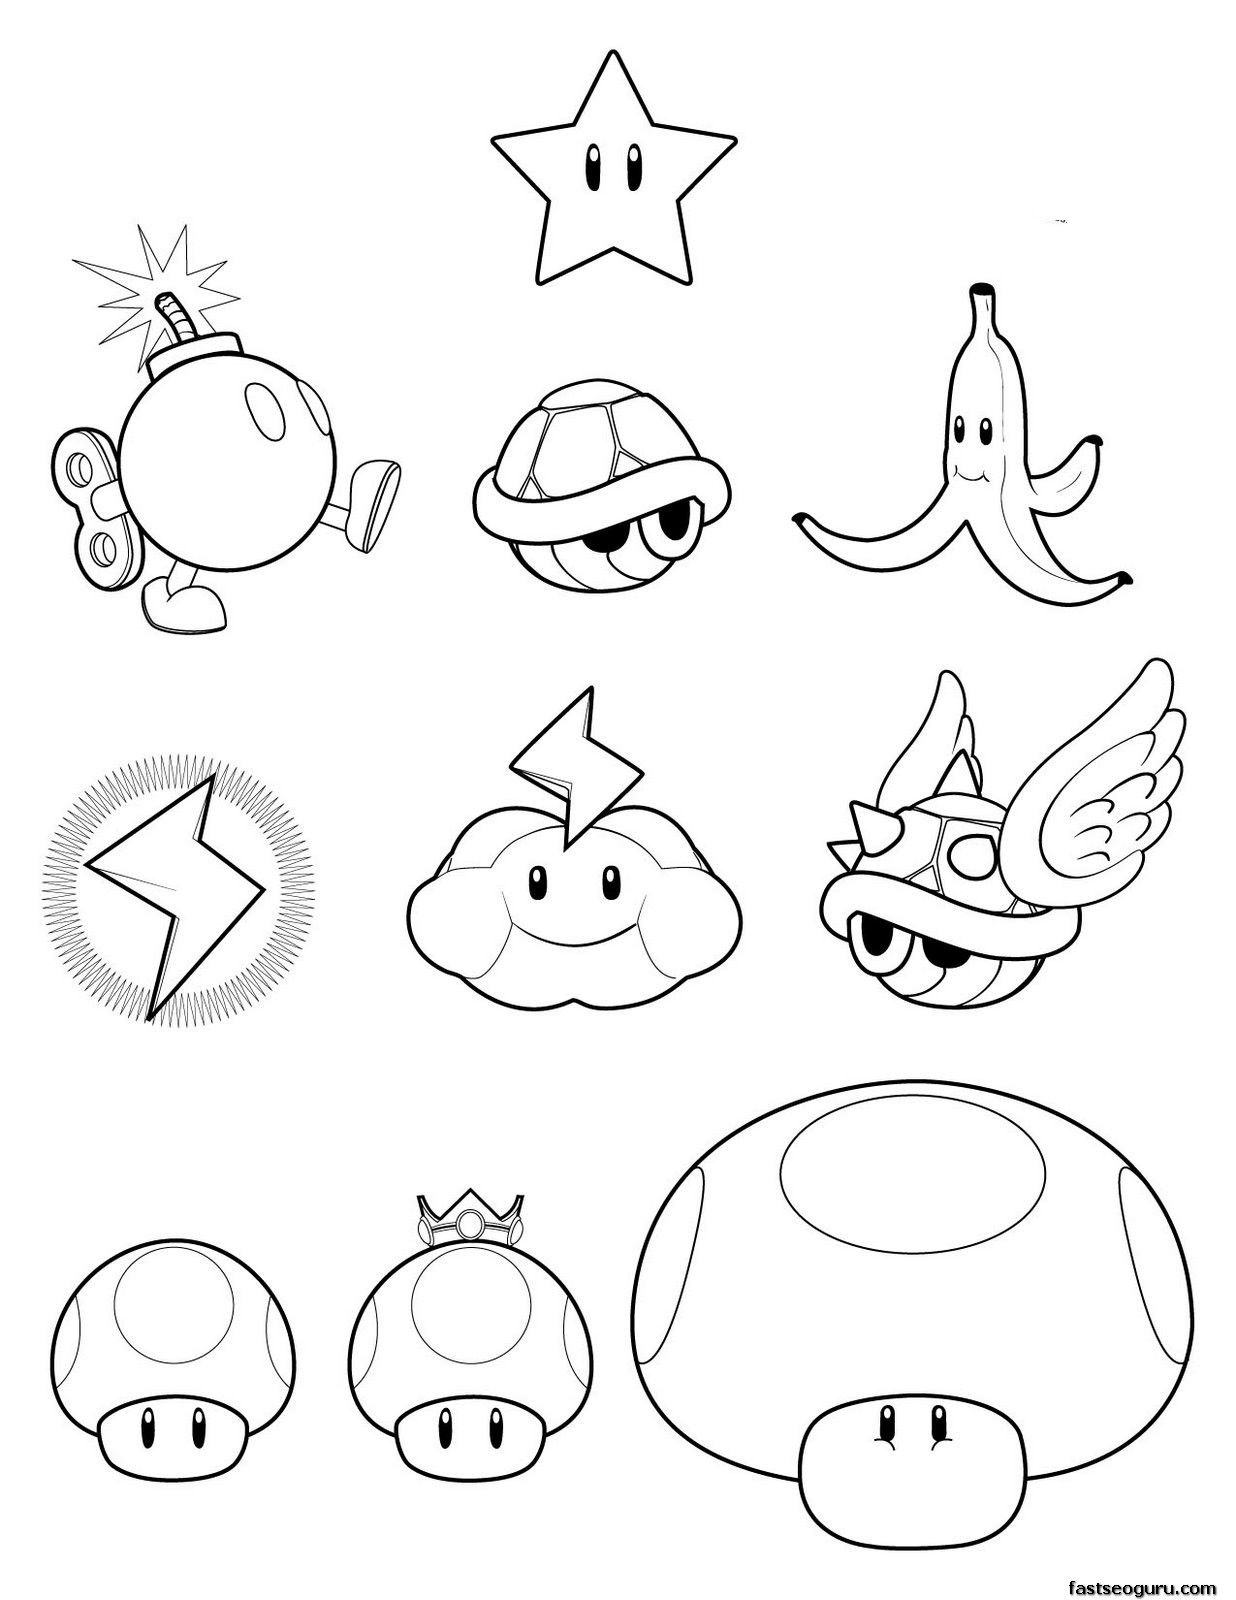 Super Mario Koopa Wario Toad Coloring Pages Jpg 1236 1600